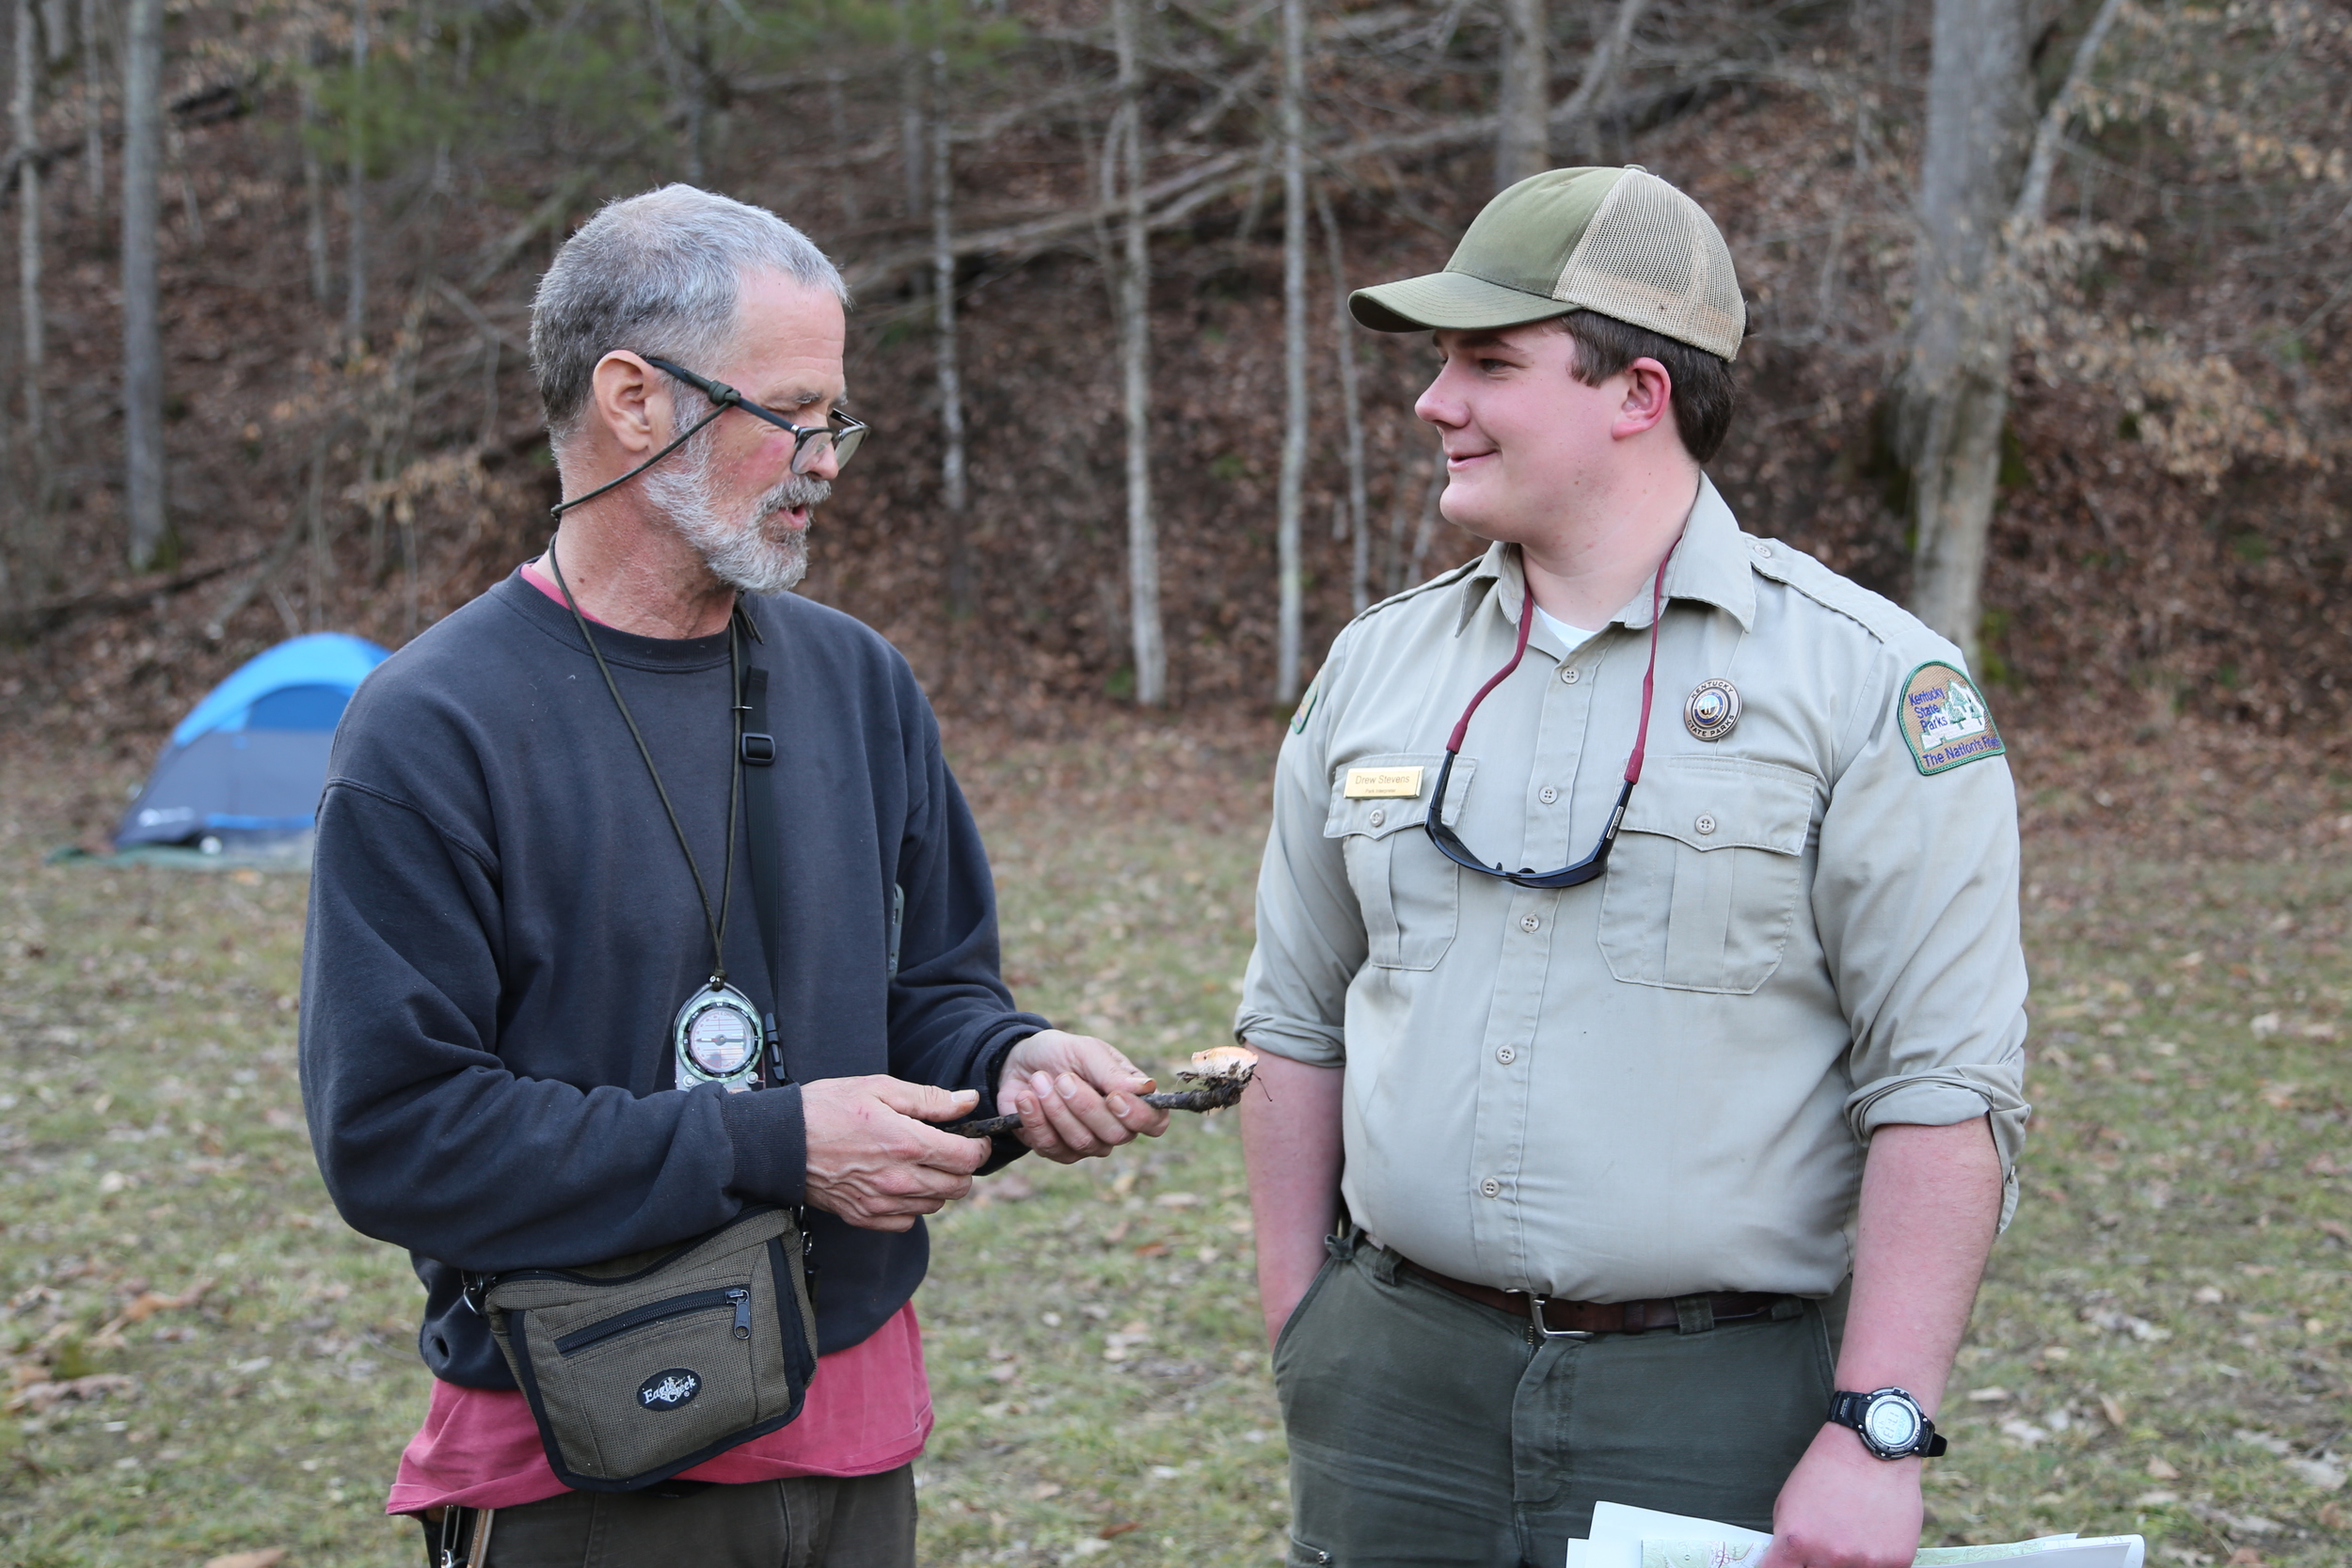 Survival expert John Rose and park naturalist Drew Stevens. Photo by Todd Nystrom.